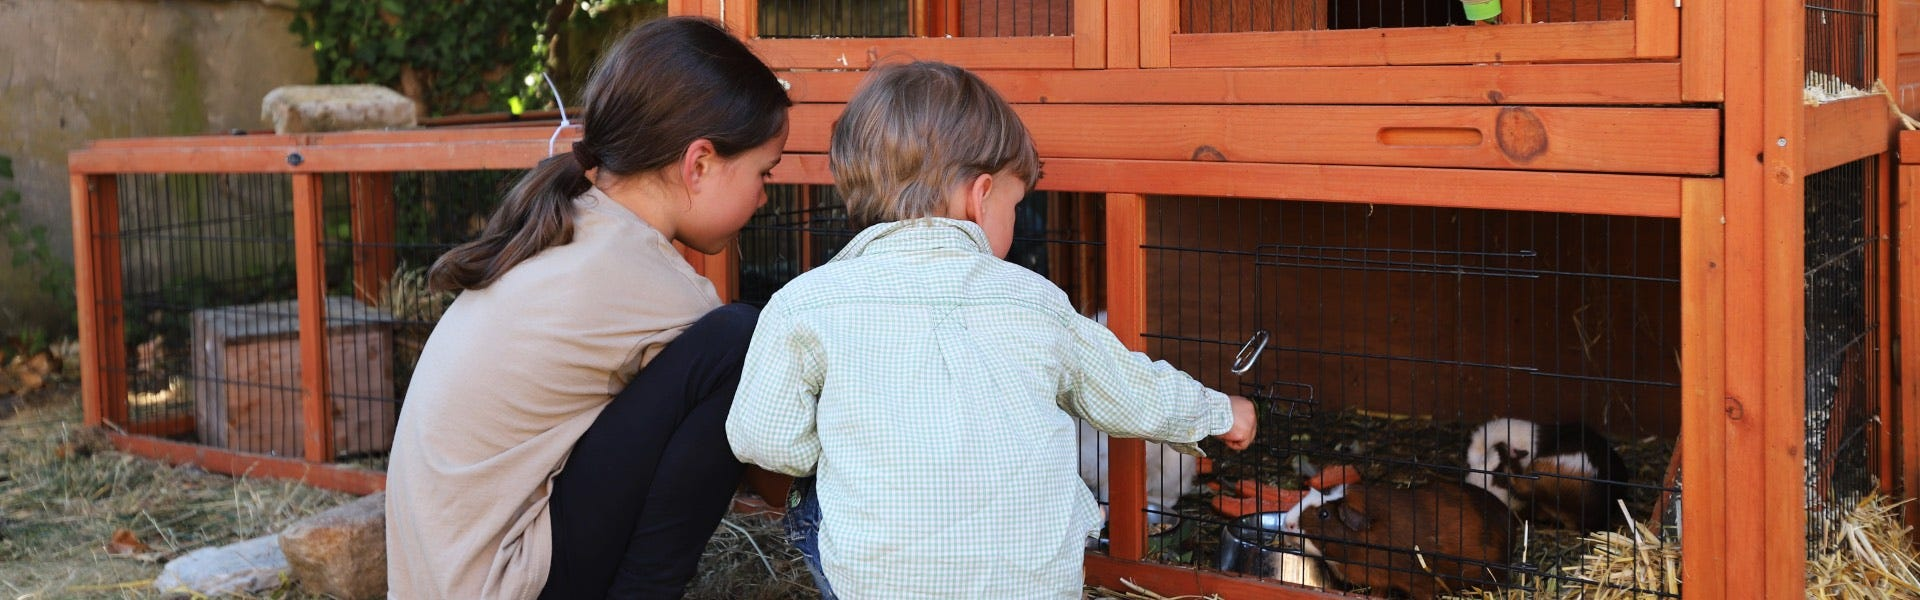 Build your own animal hutch two kids feeding guinea pigs